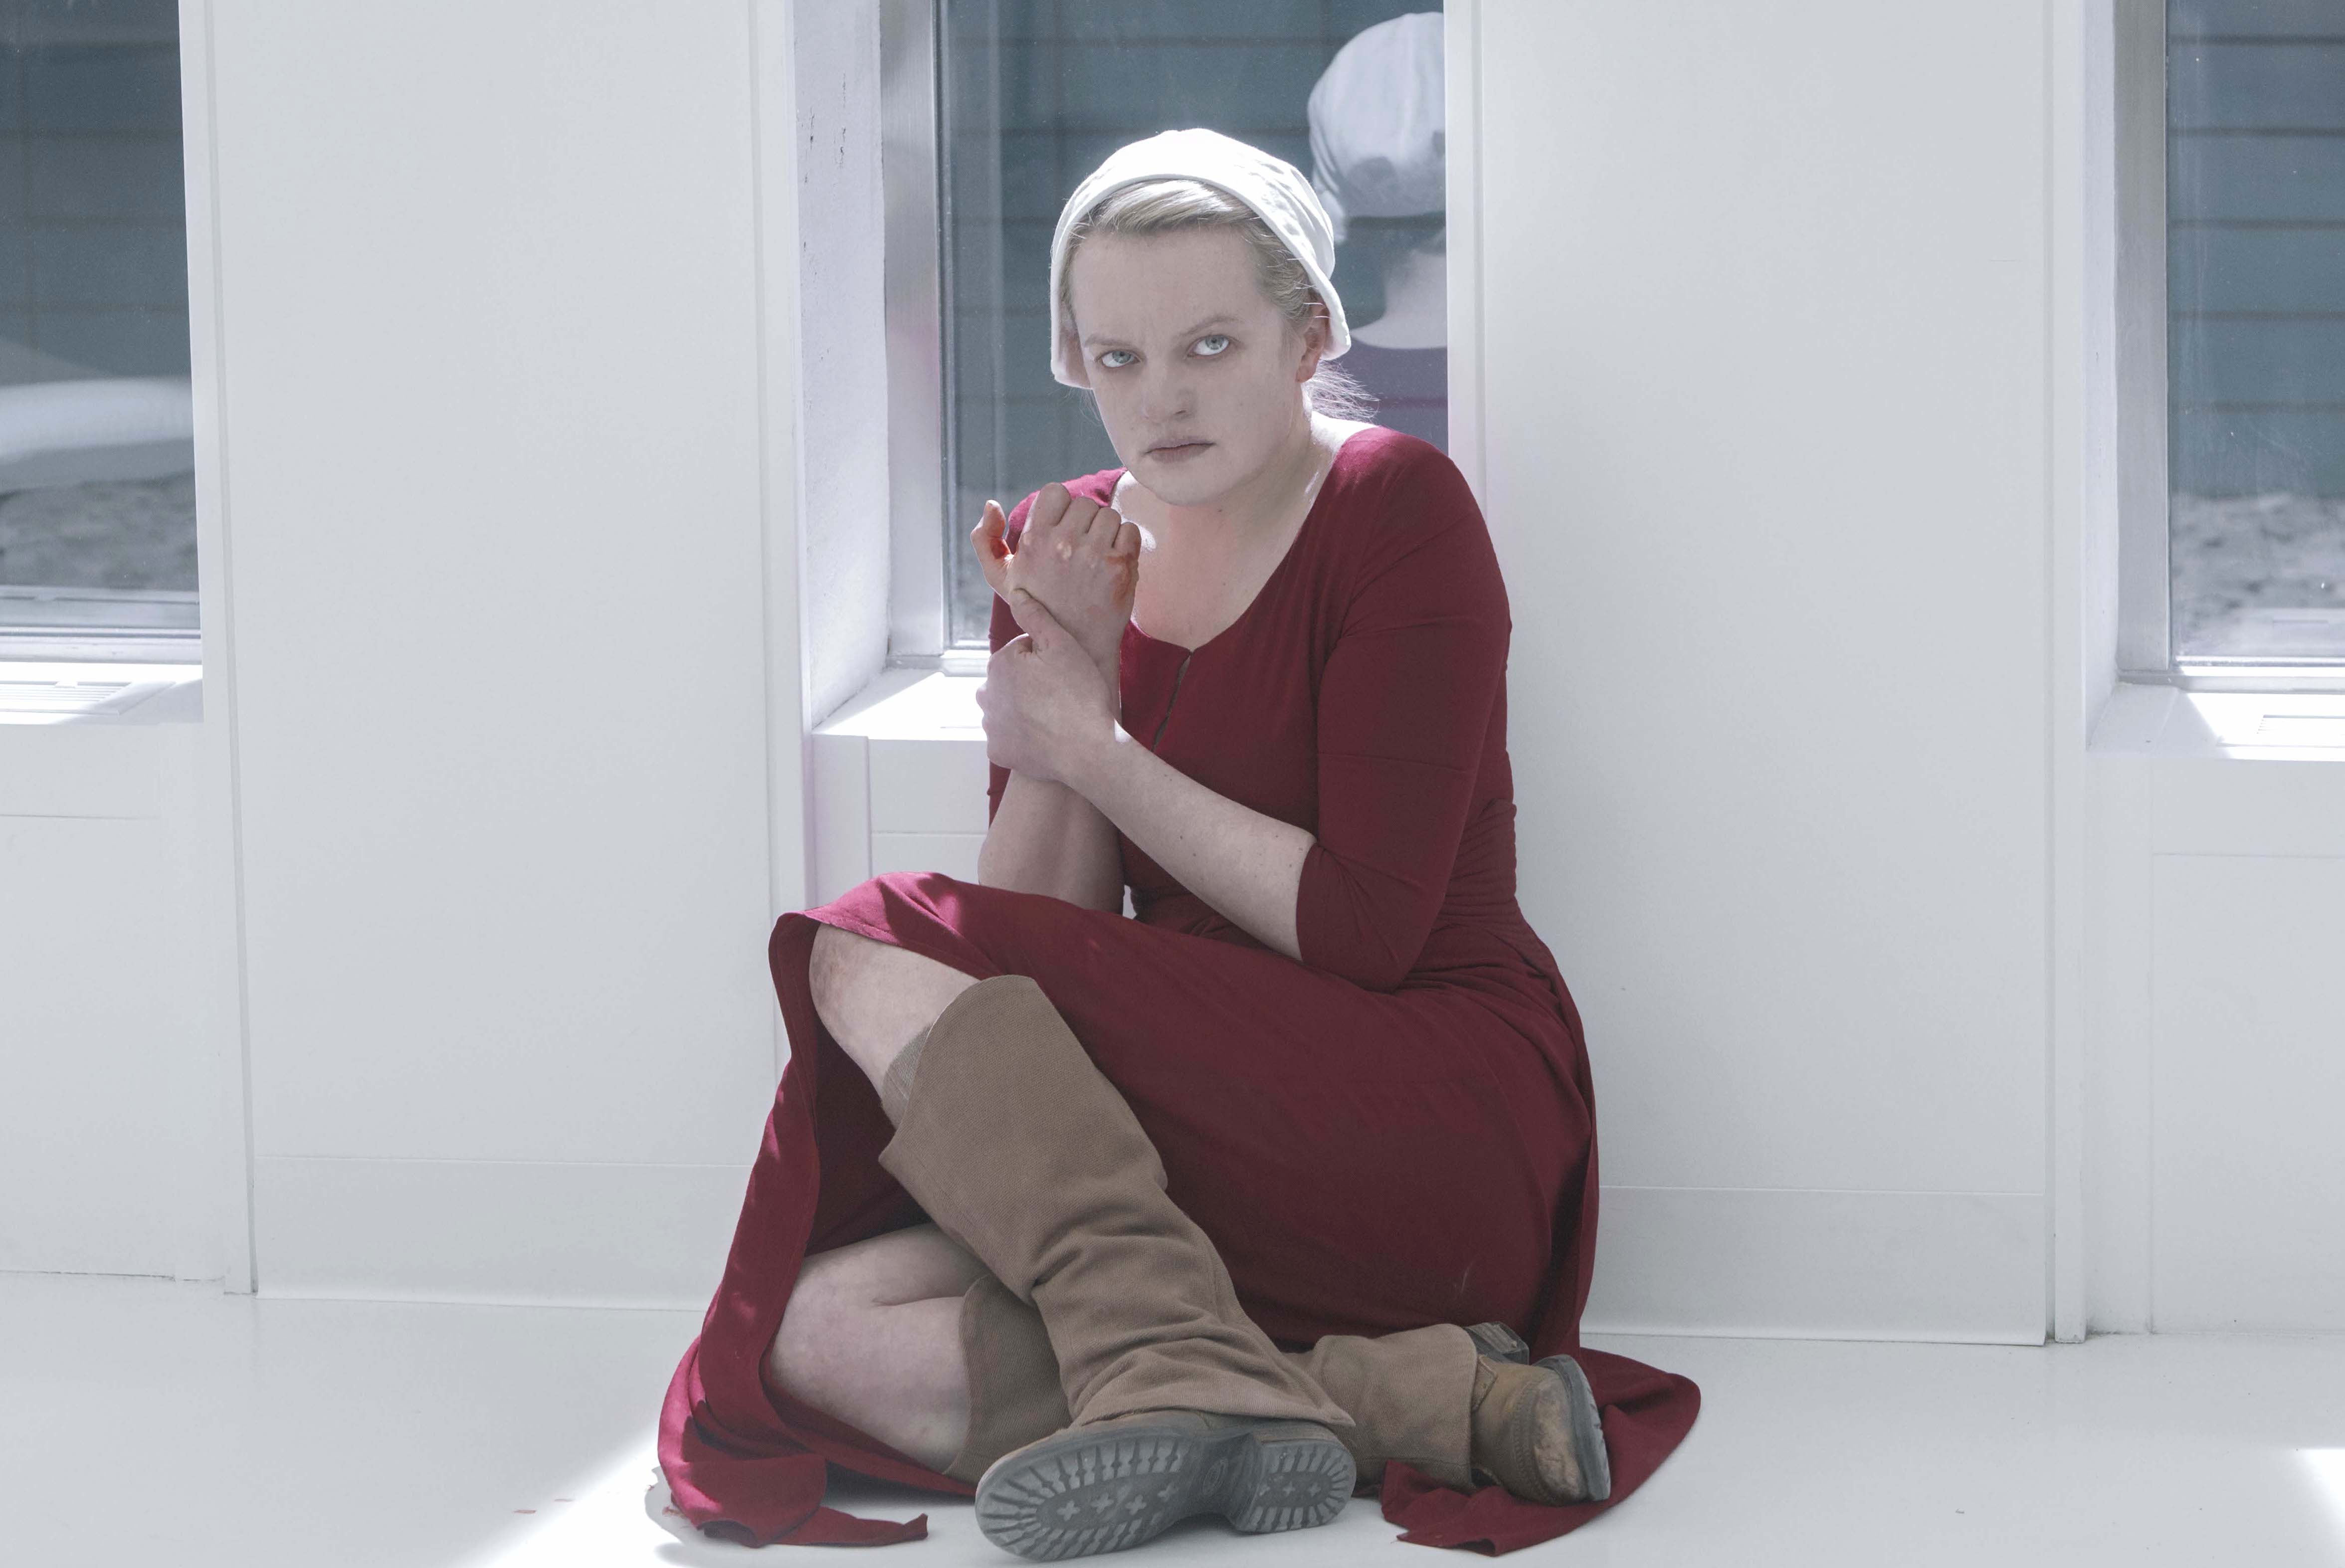 """The Handmaid's Tale -- """"Heroic"""" - Episode 309 -- Confined in a hospital, Juneís sanity begins to fray. An encounter with Serena Joy forces June to reassess her recent actions. June (Elisabeth Moss), shown. (Photo by: Sophie Giraud/Hulu)"""